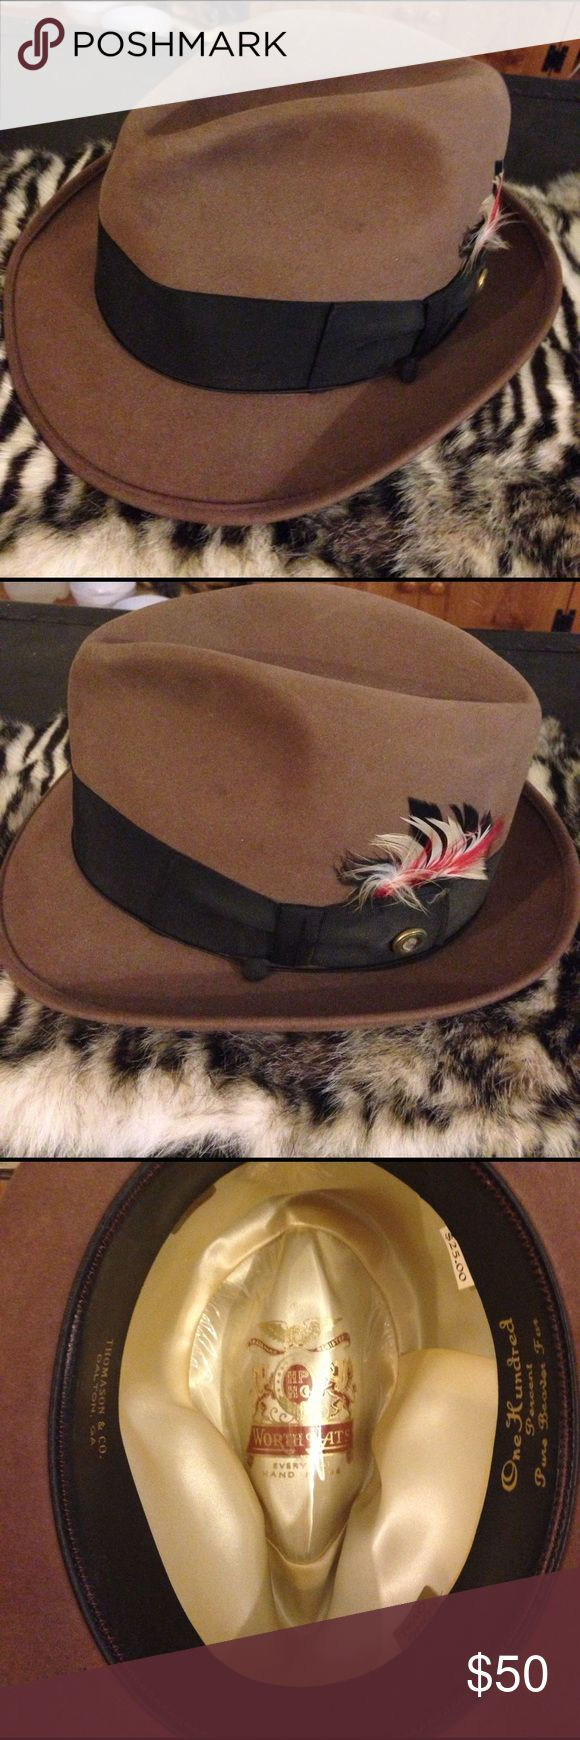 Worth Hats Mocha Brown Beaver Fur Fedora 6 7/8 Worth Hats Custom Made Mocha Brown Beaver Fur Fedora size 6 7/8! Vintage 1960s! Great shape! Please ask questions and bundle! Worth Hats Accessories Hats